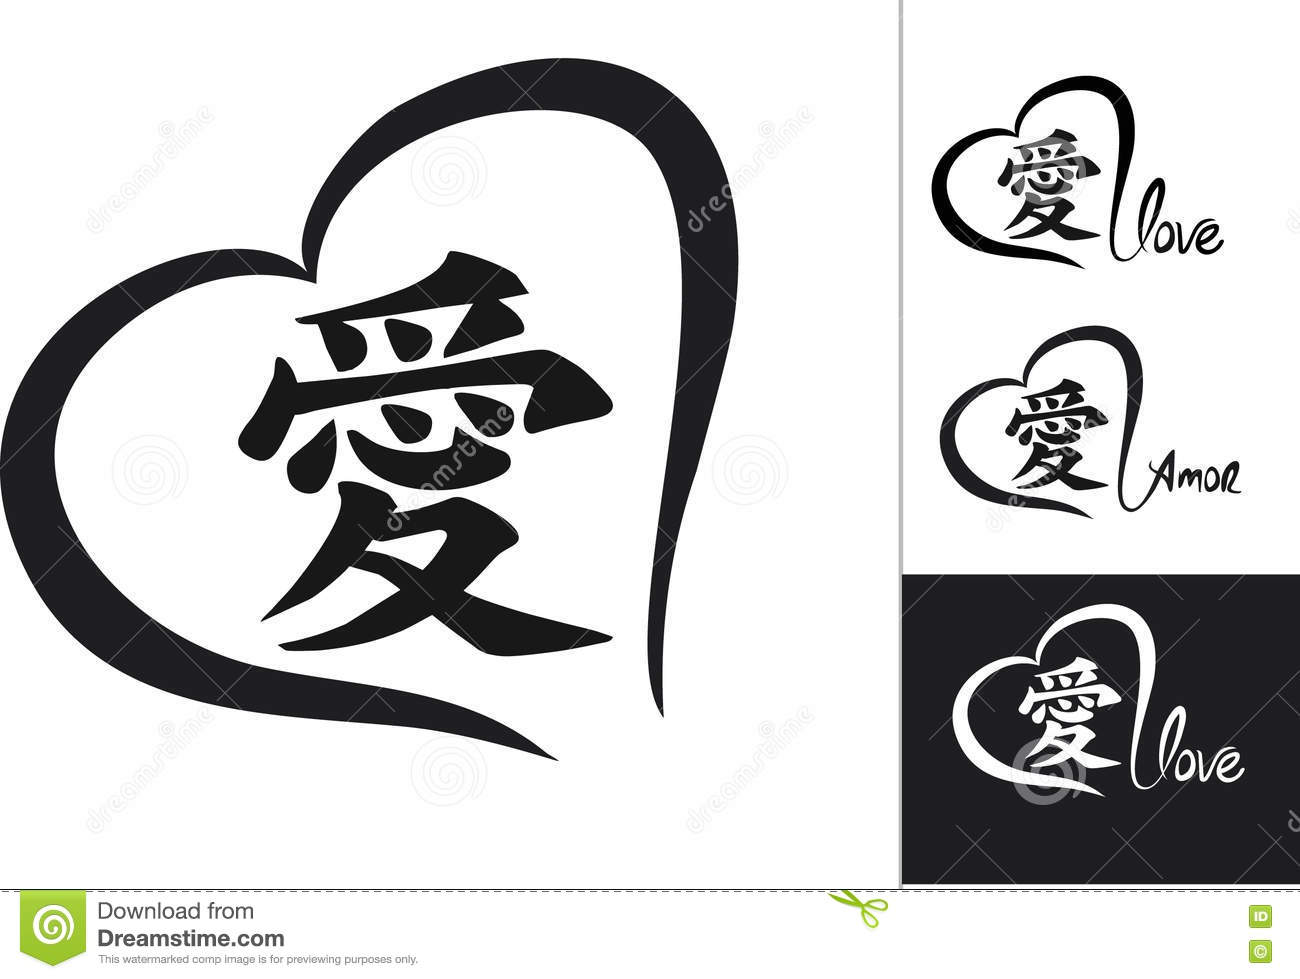 Kanji symbol for love in japanese stock vector illustration of kanji symbol for love in japanese biocorpaavc Gallery